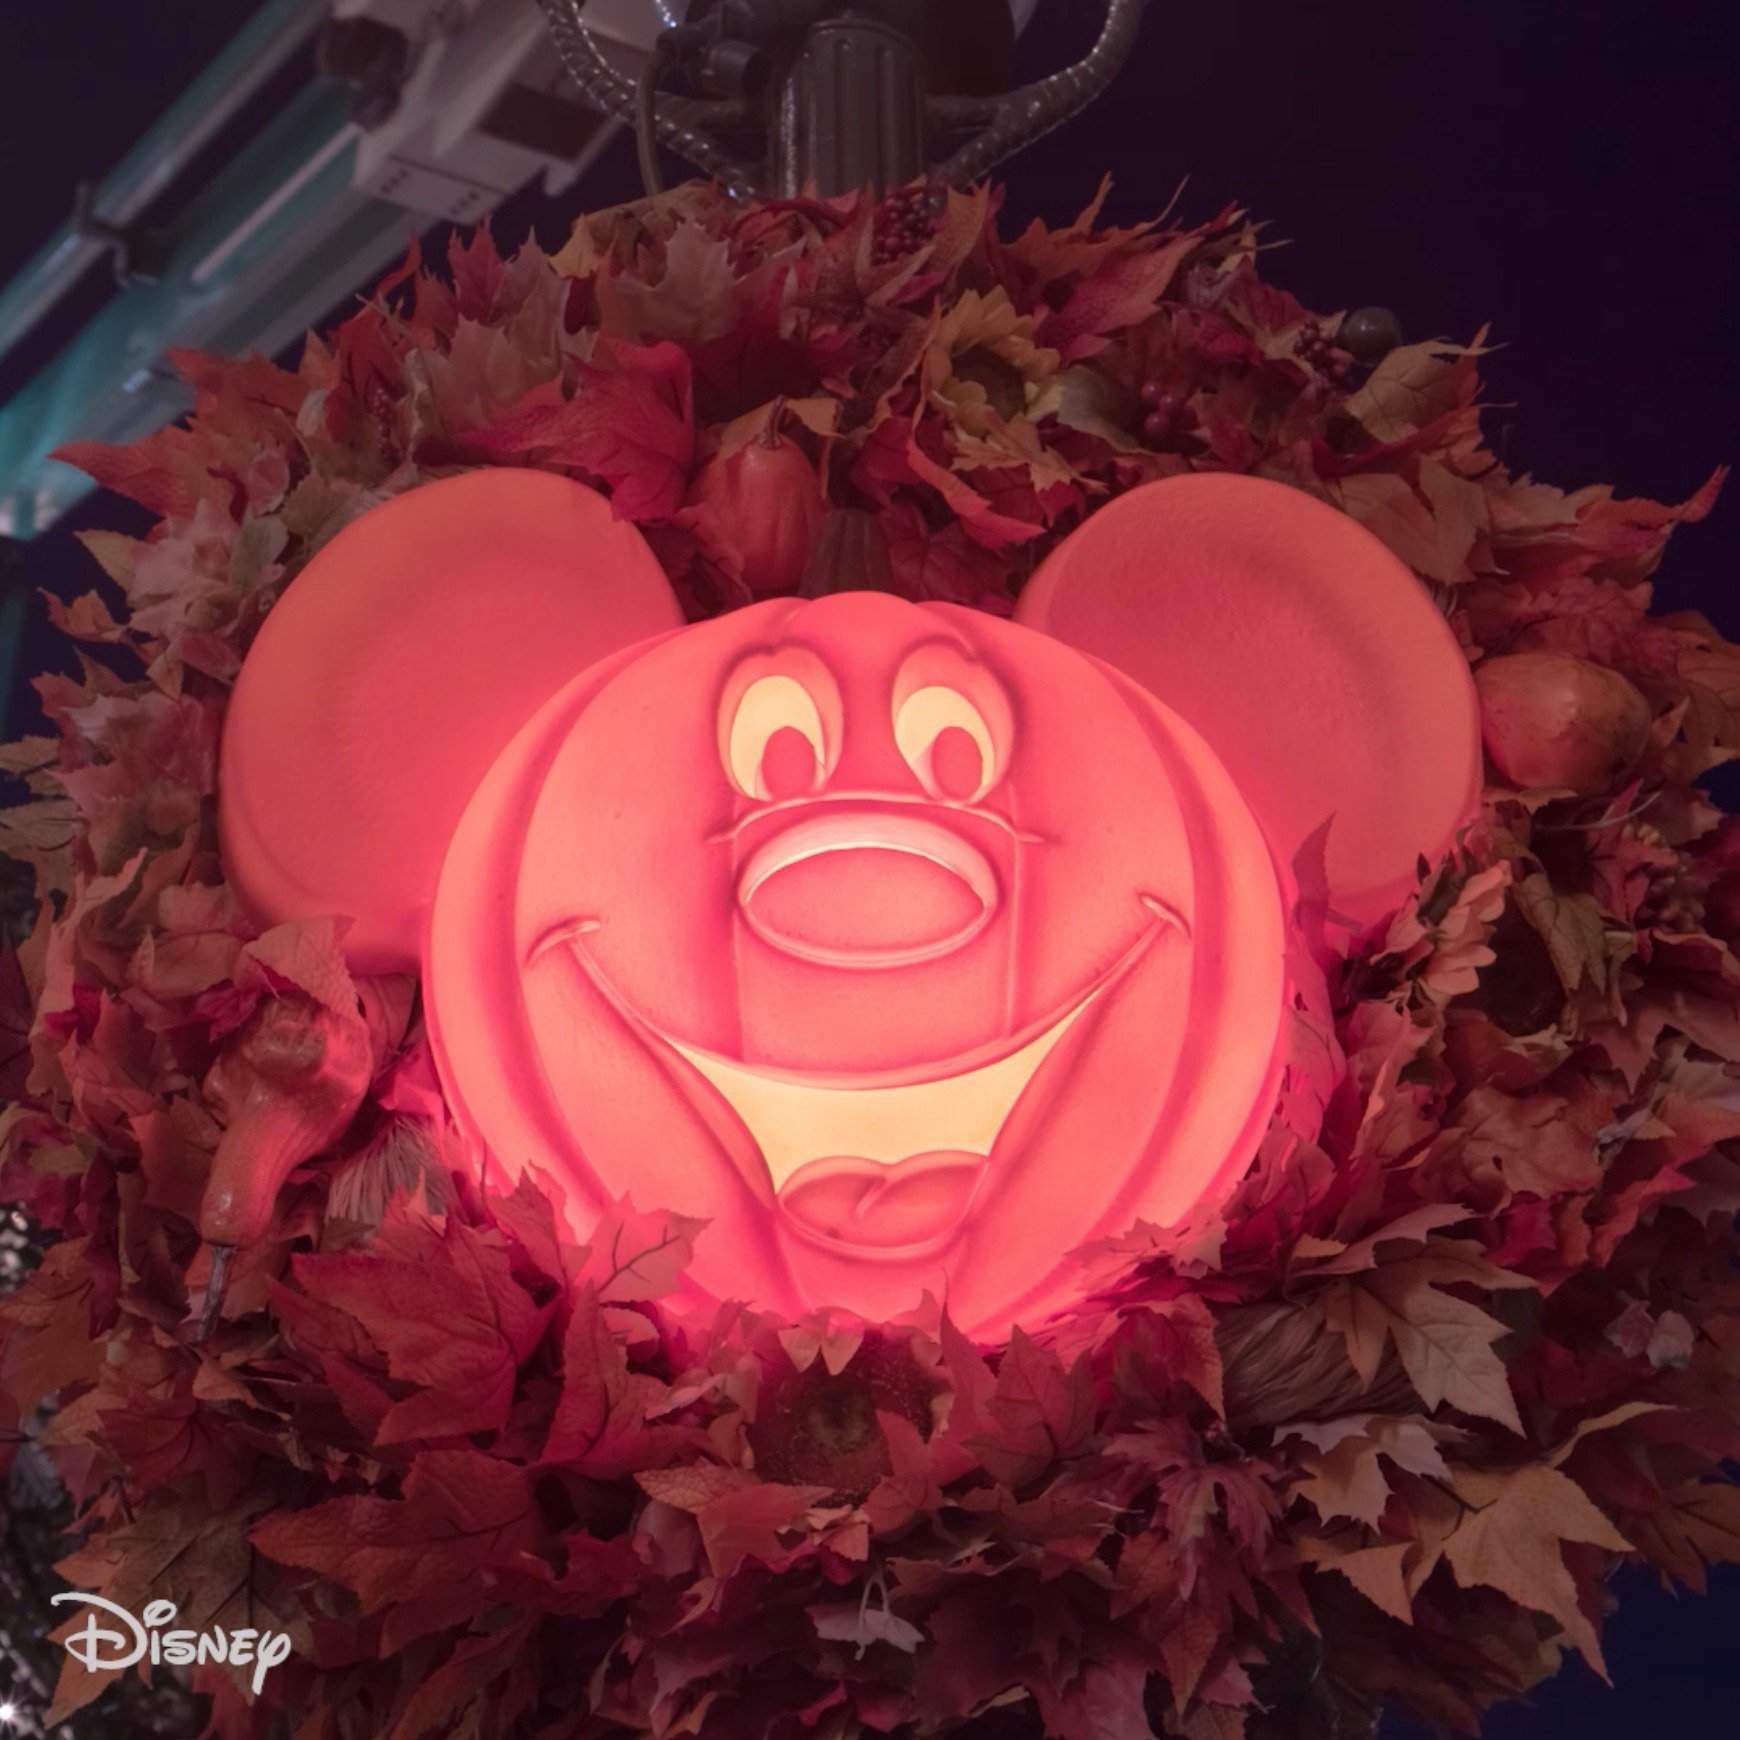 Disney: This is Halloween, this is Halloween at WaltDisneyWorld! Learn more here: https://t.co/0quUl63Yhs https://t.co/TGfnidIRk5